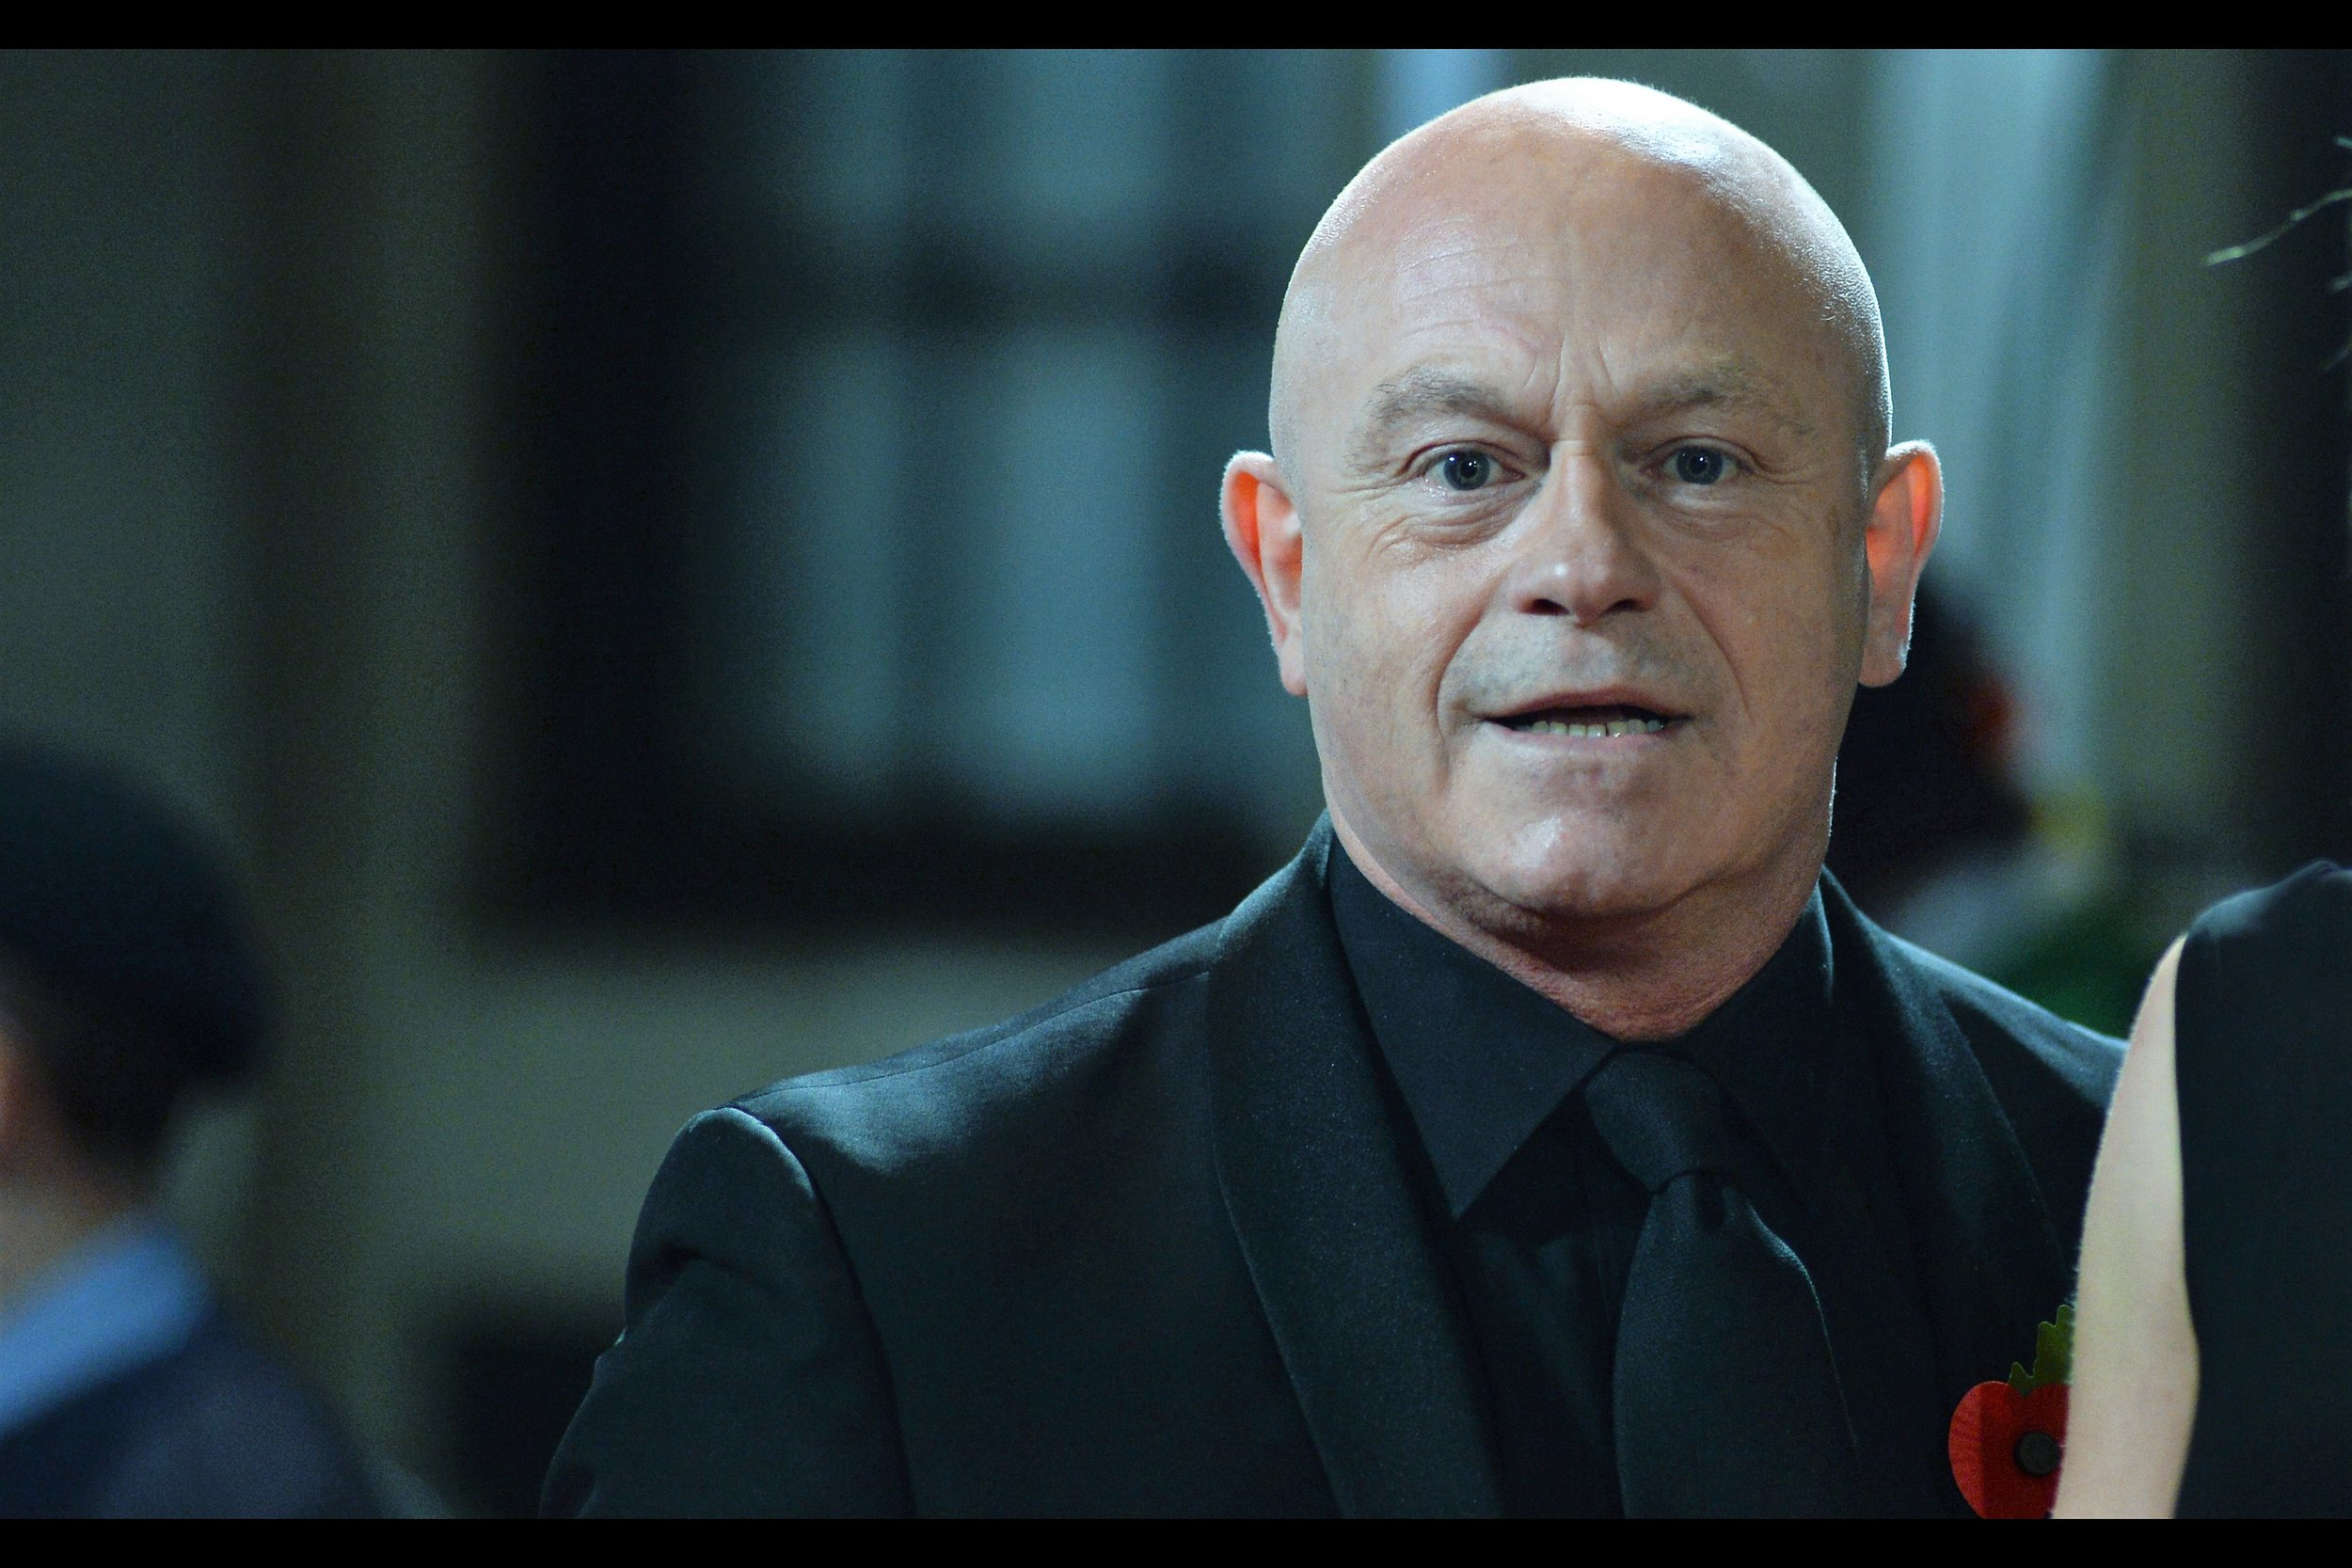 This may be Ross Kemp, and I say that mainly because some of the more fervent/erudite autograph dealers in my vicinity started calling people by their full name, which to me feels kind of needlessly confrontational.